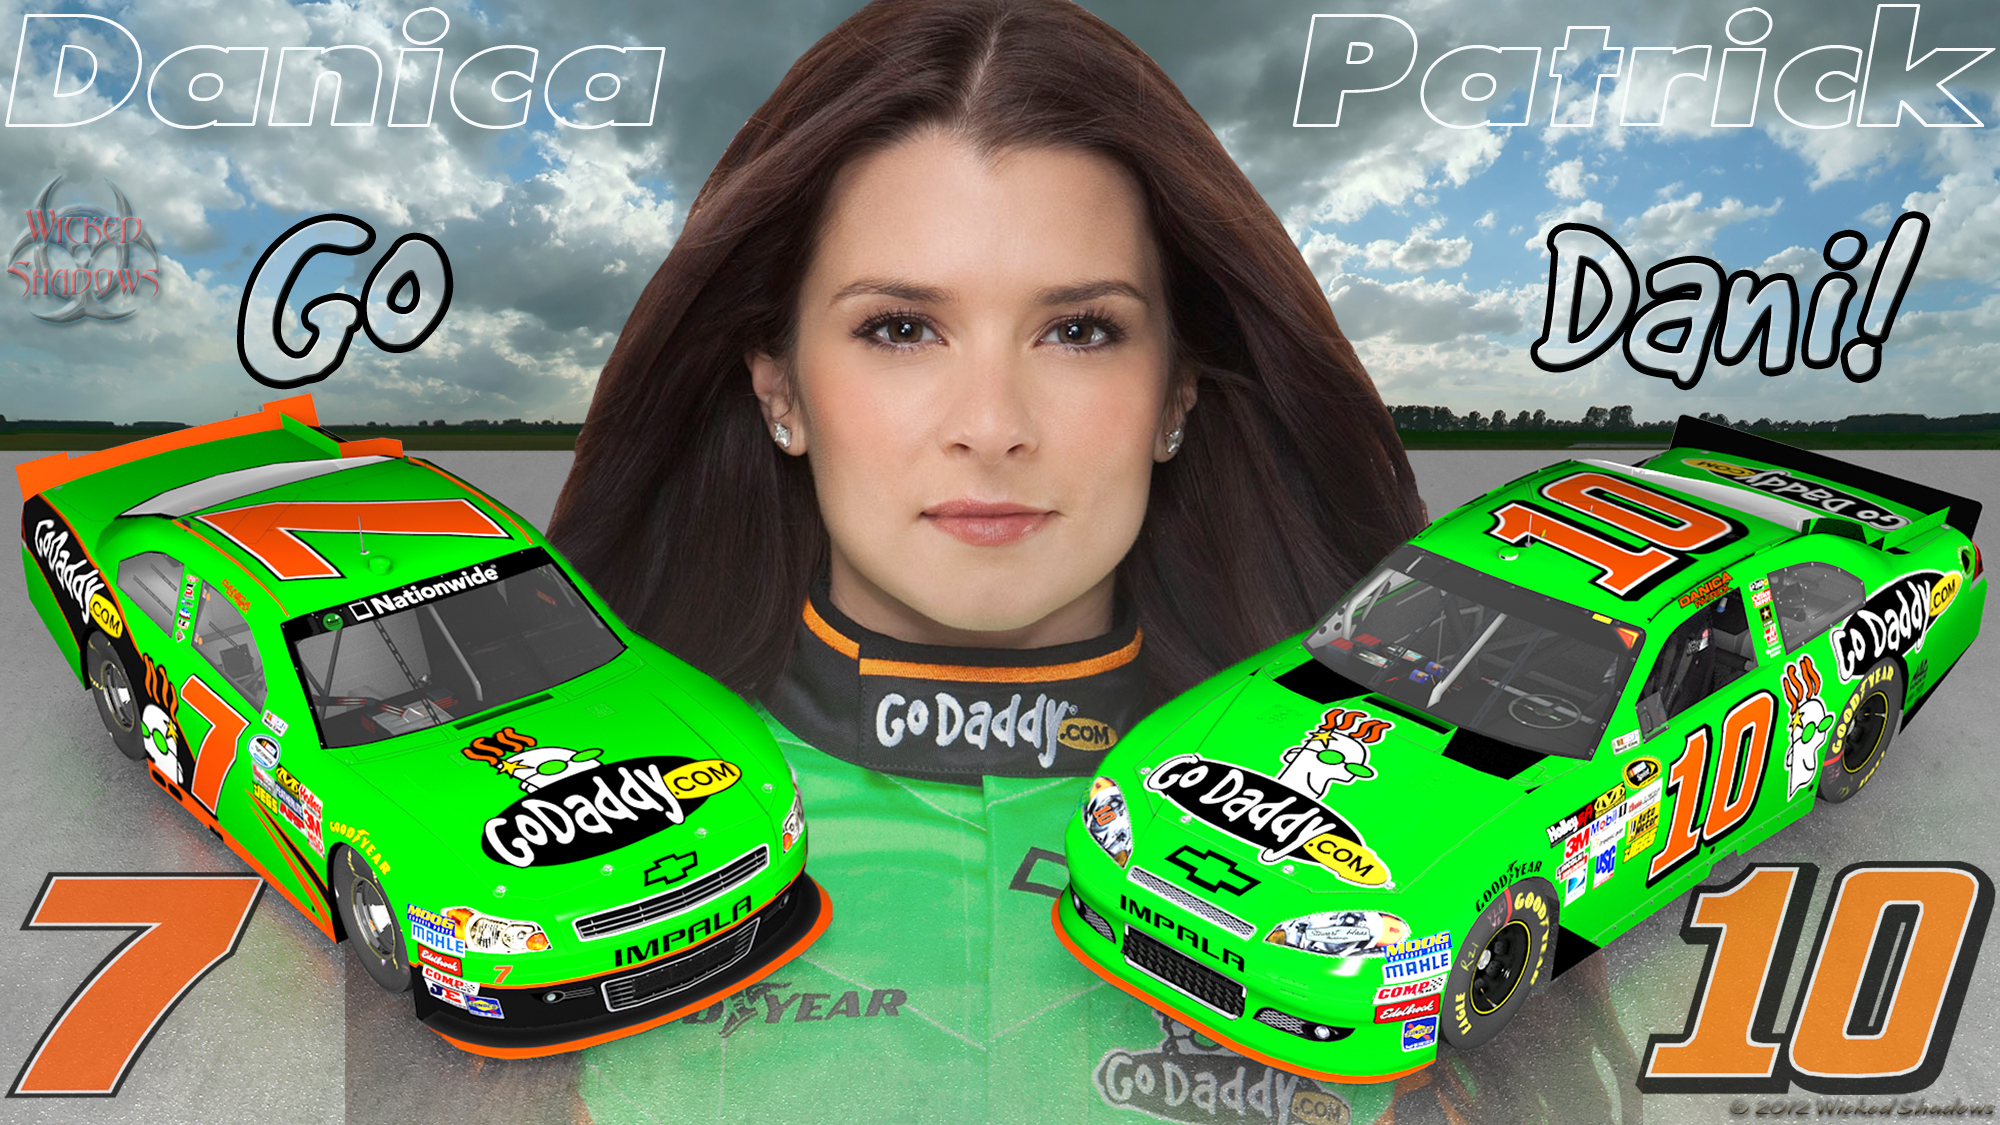 Danica patrick showing her boobs consider, that